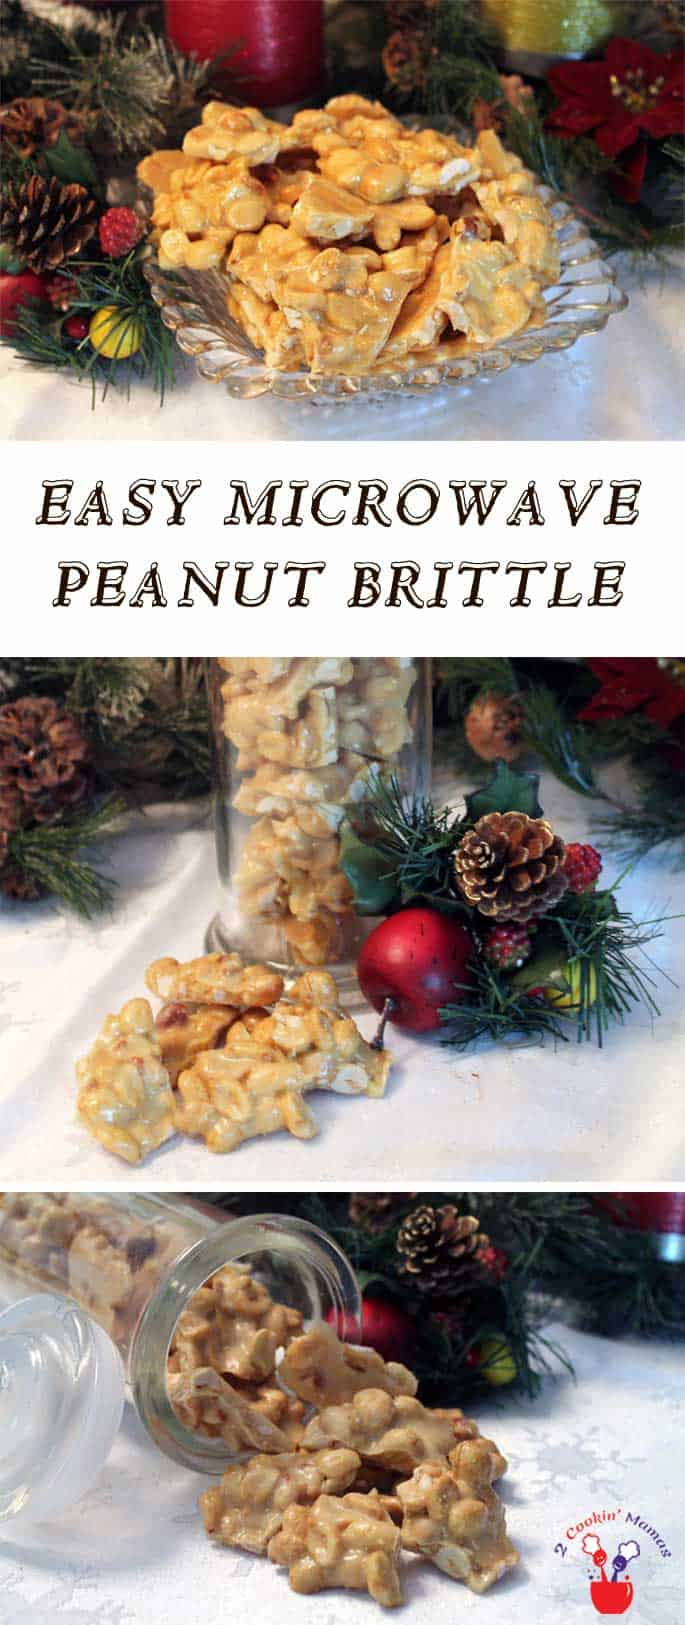 Microwave Peanut Brittle pin | 2 Cookin Mamas Microwave peanut brittle is easy to make & always a big hit. All you need is 10 minutes & a microwave & you'll have the perfect party snack or holiday gift. #recipe